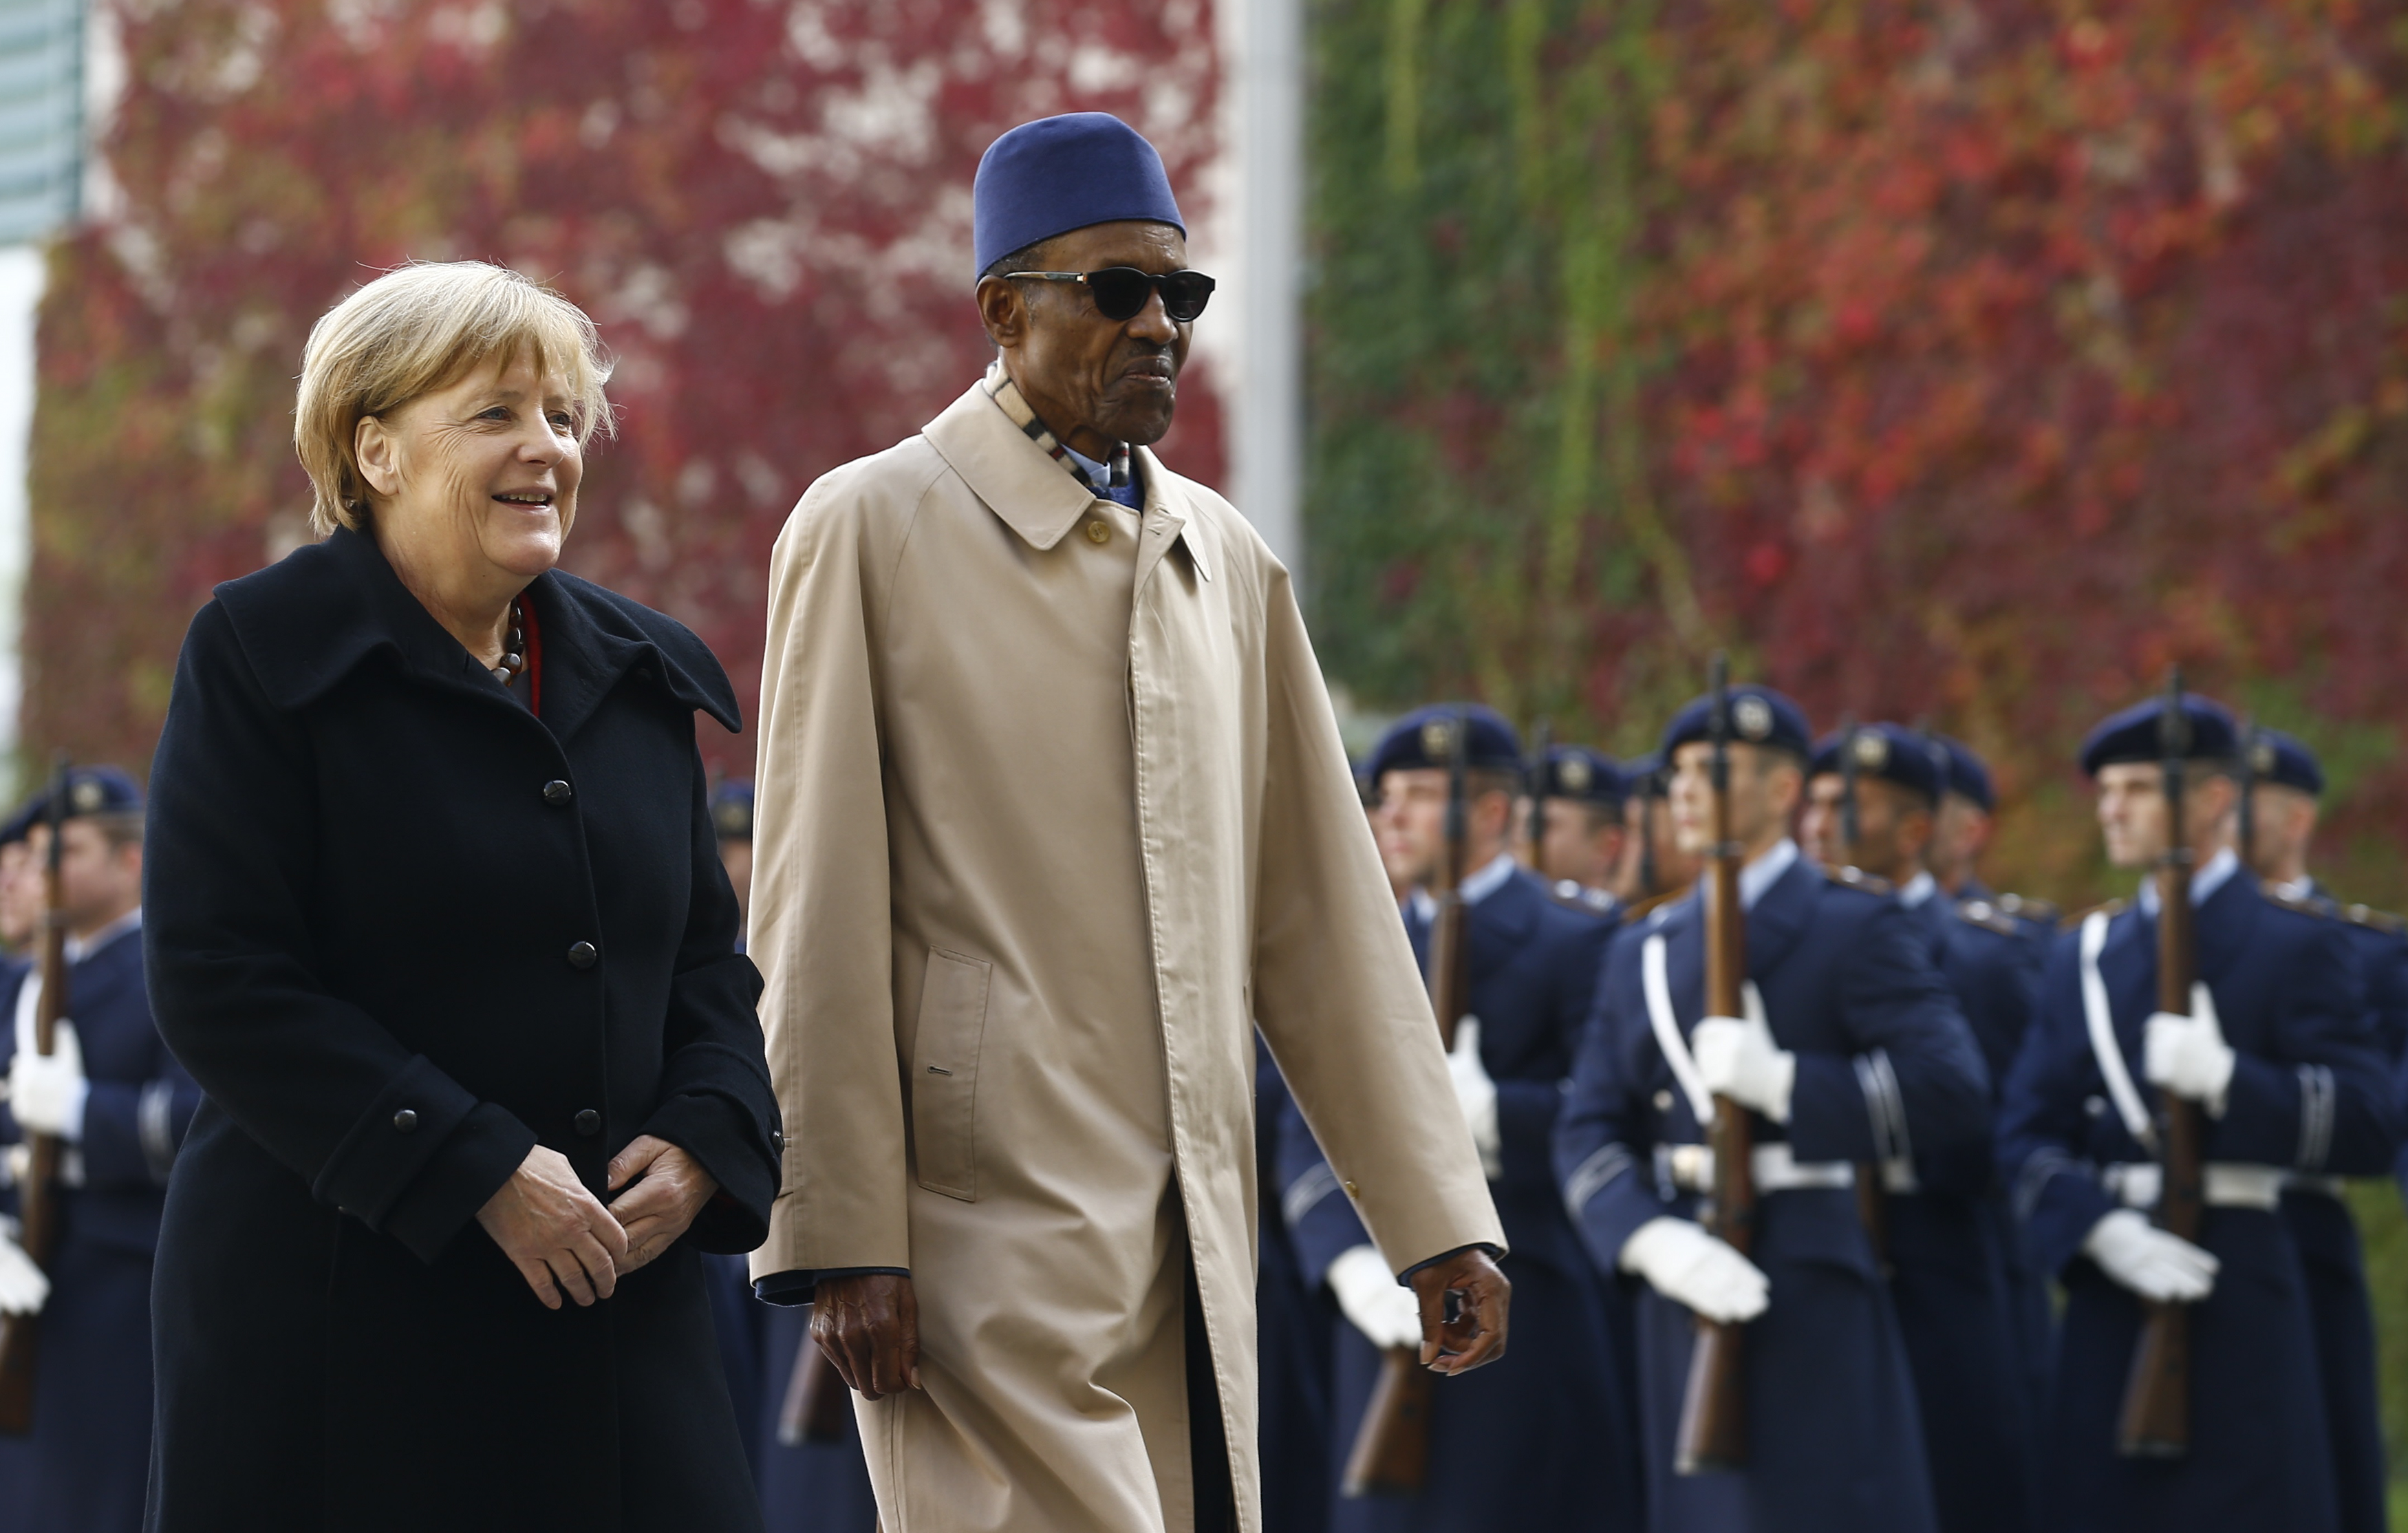 German Chancellor Merkel and Nigerian President Buhari review the honour guard during a welcoming ceremony at the chancellery in Berlin